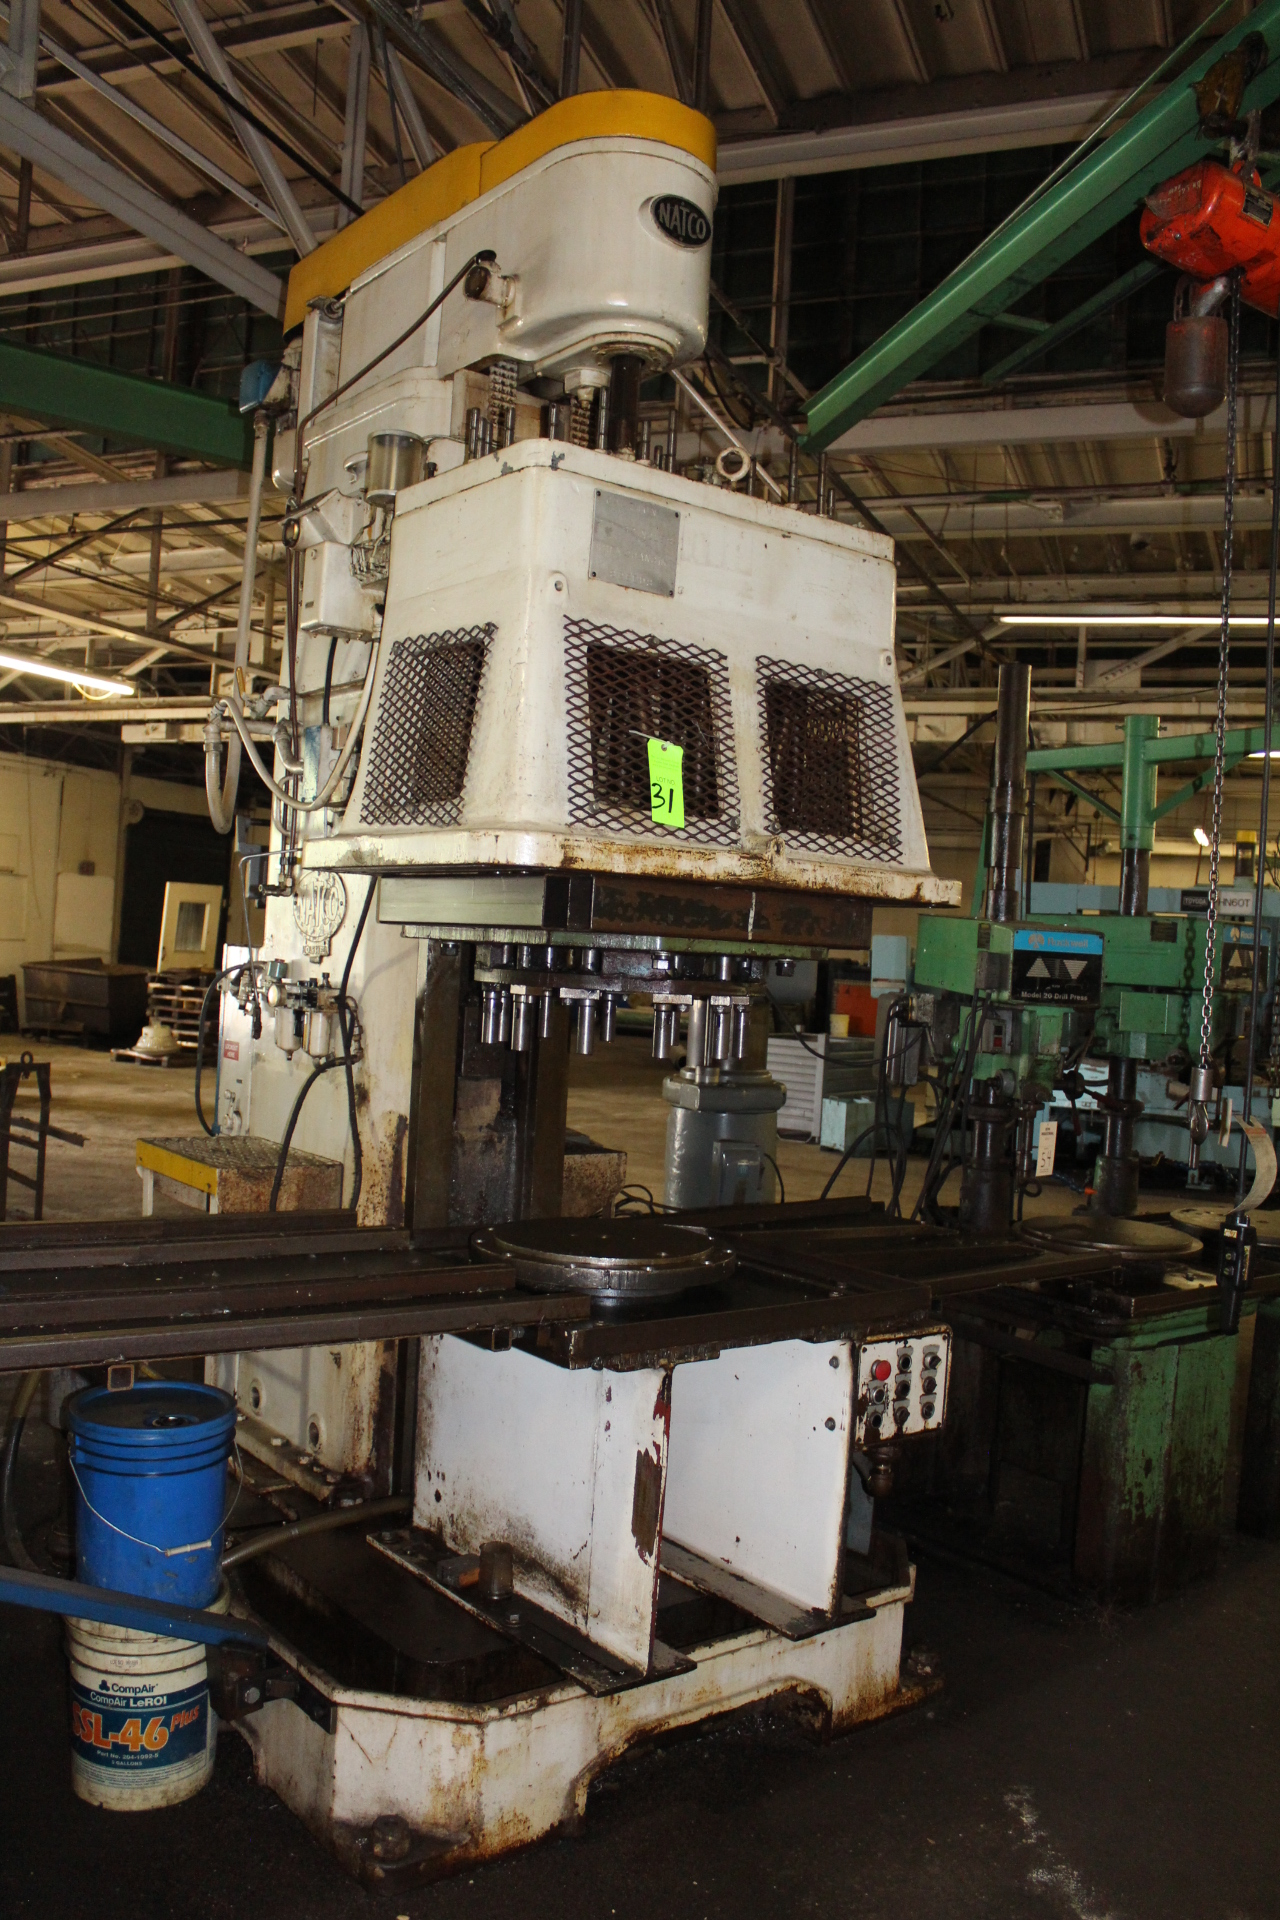 Lot 31 - Natco Multi-Spindle Vertical Production Drilling Machine